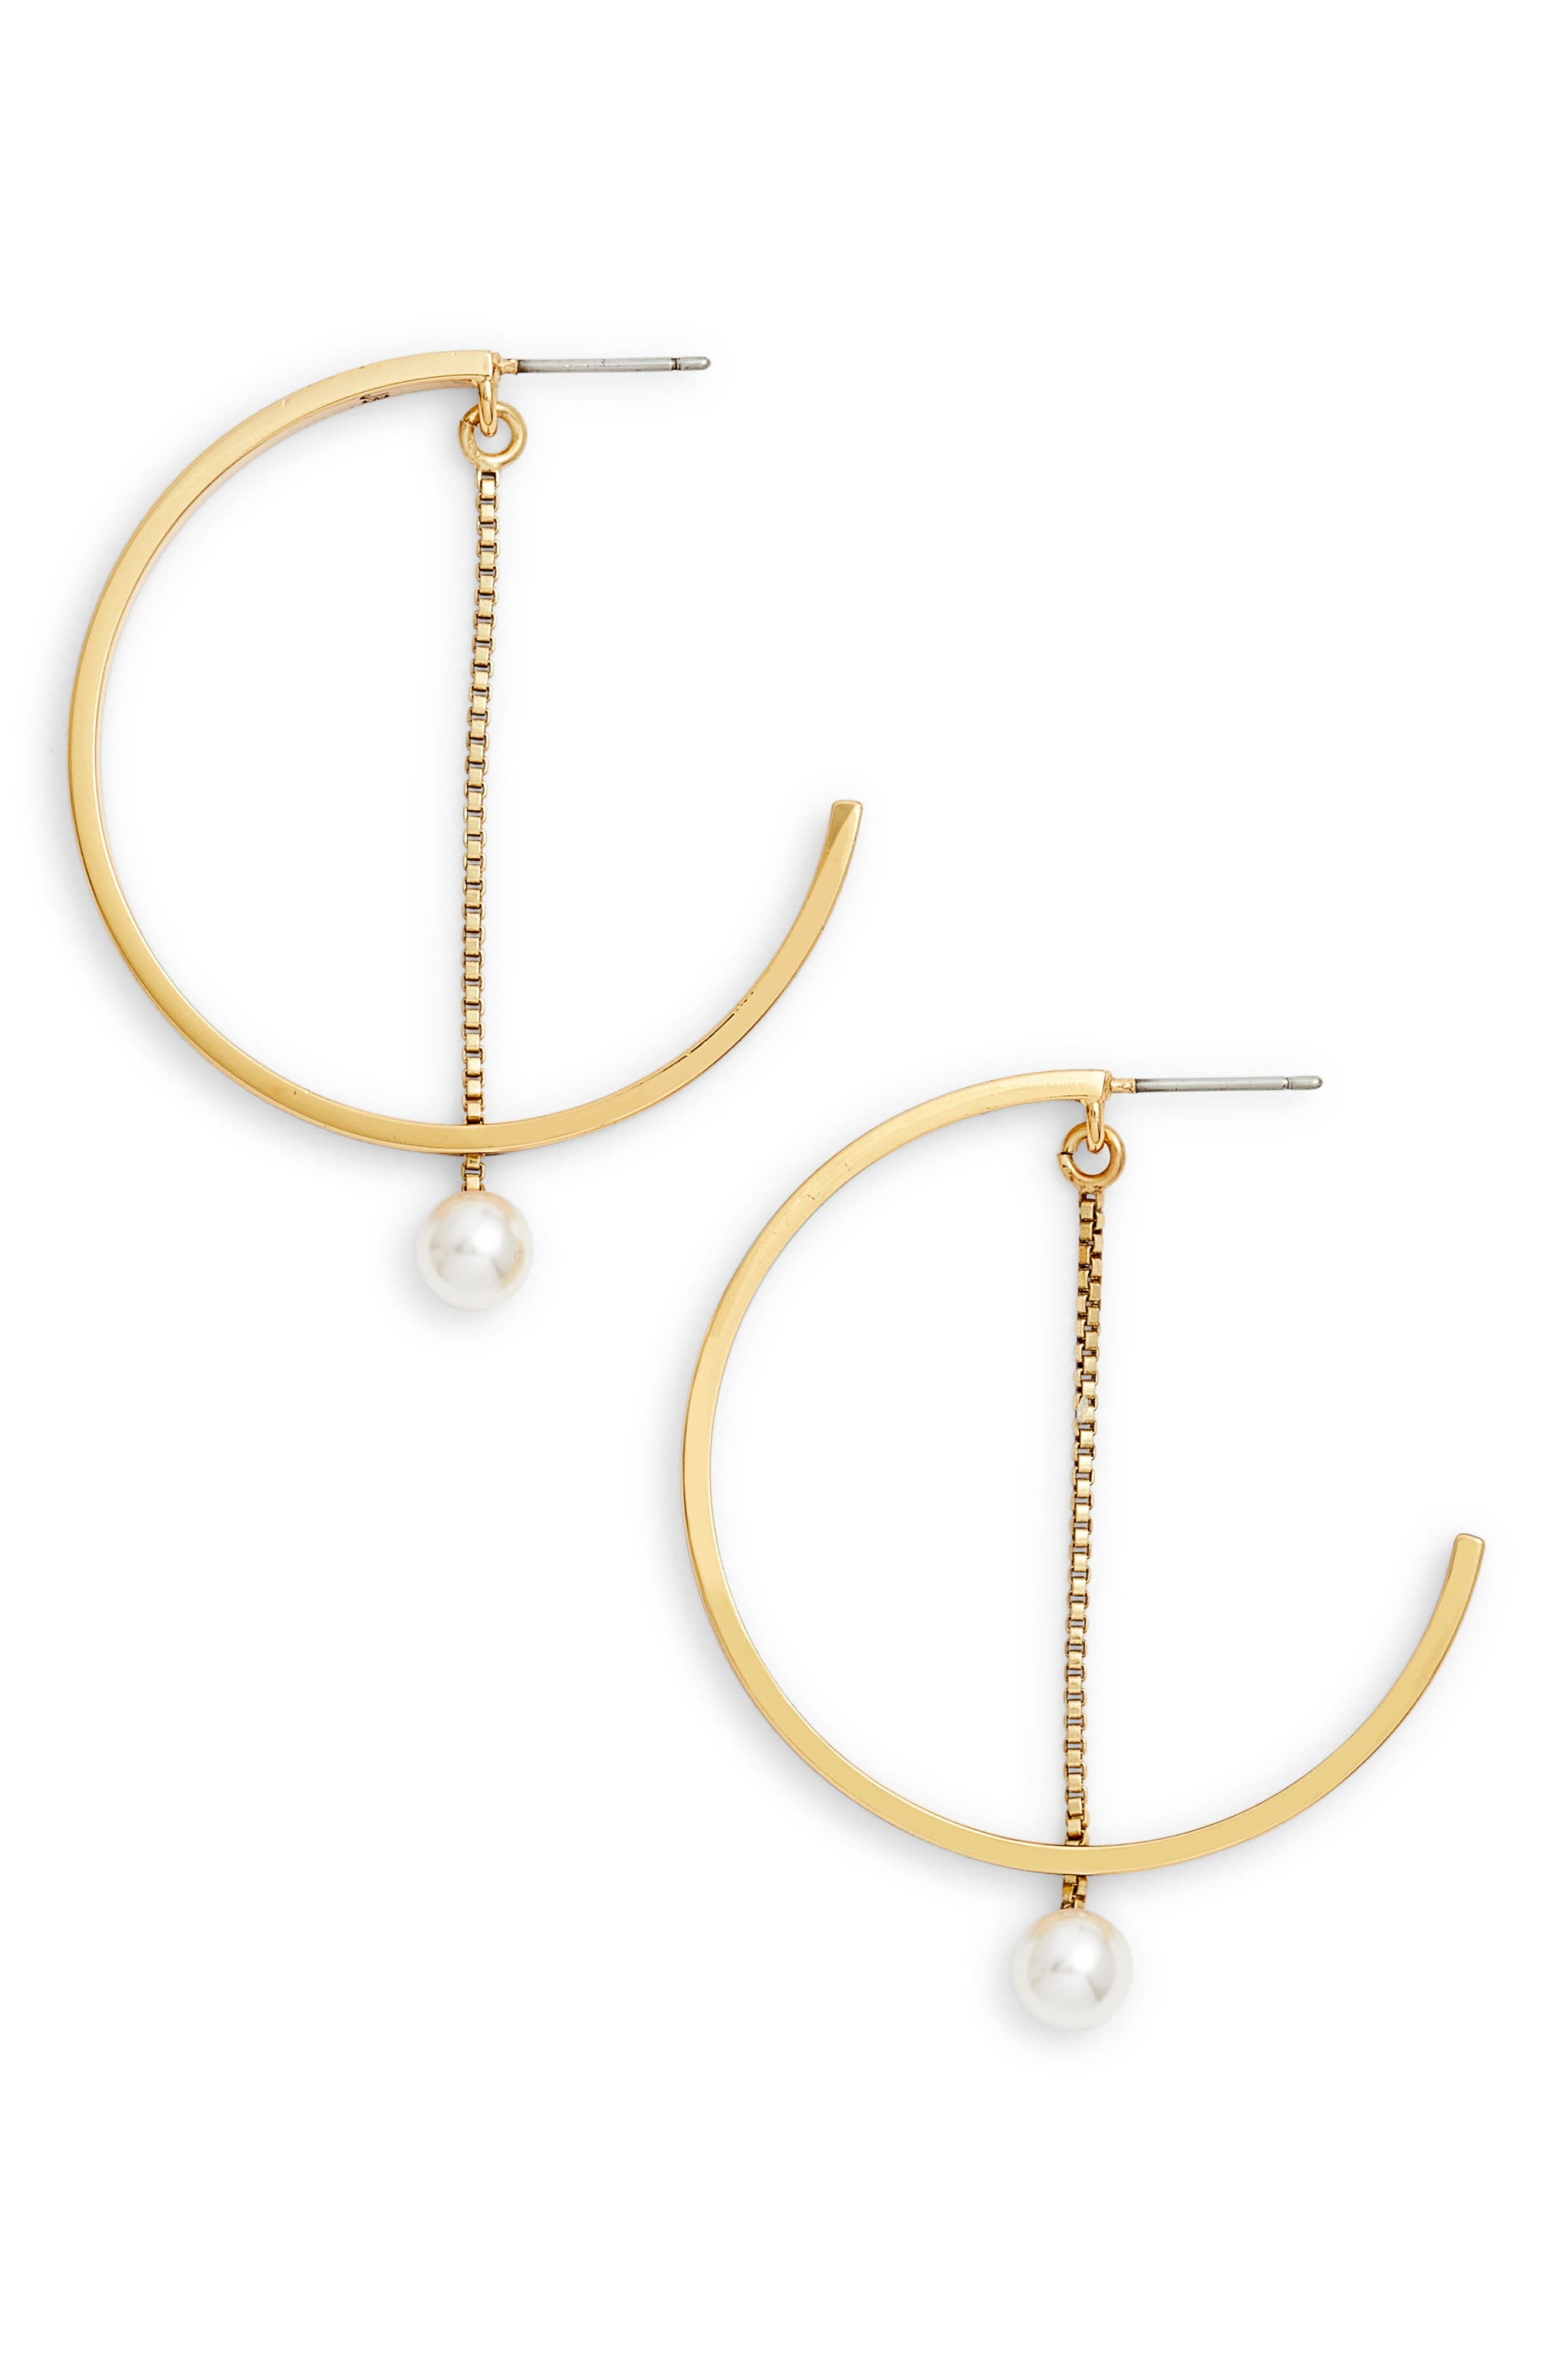 Faux Akoya Pearl Hoop Earrings,                             Main thumbnail 1, color,                             GOLD